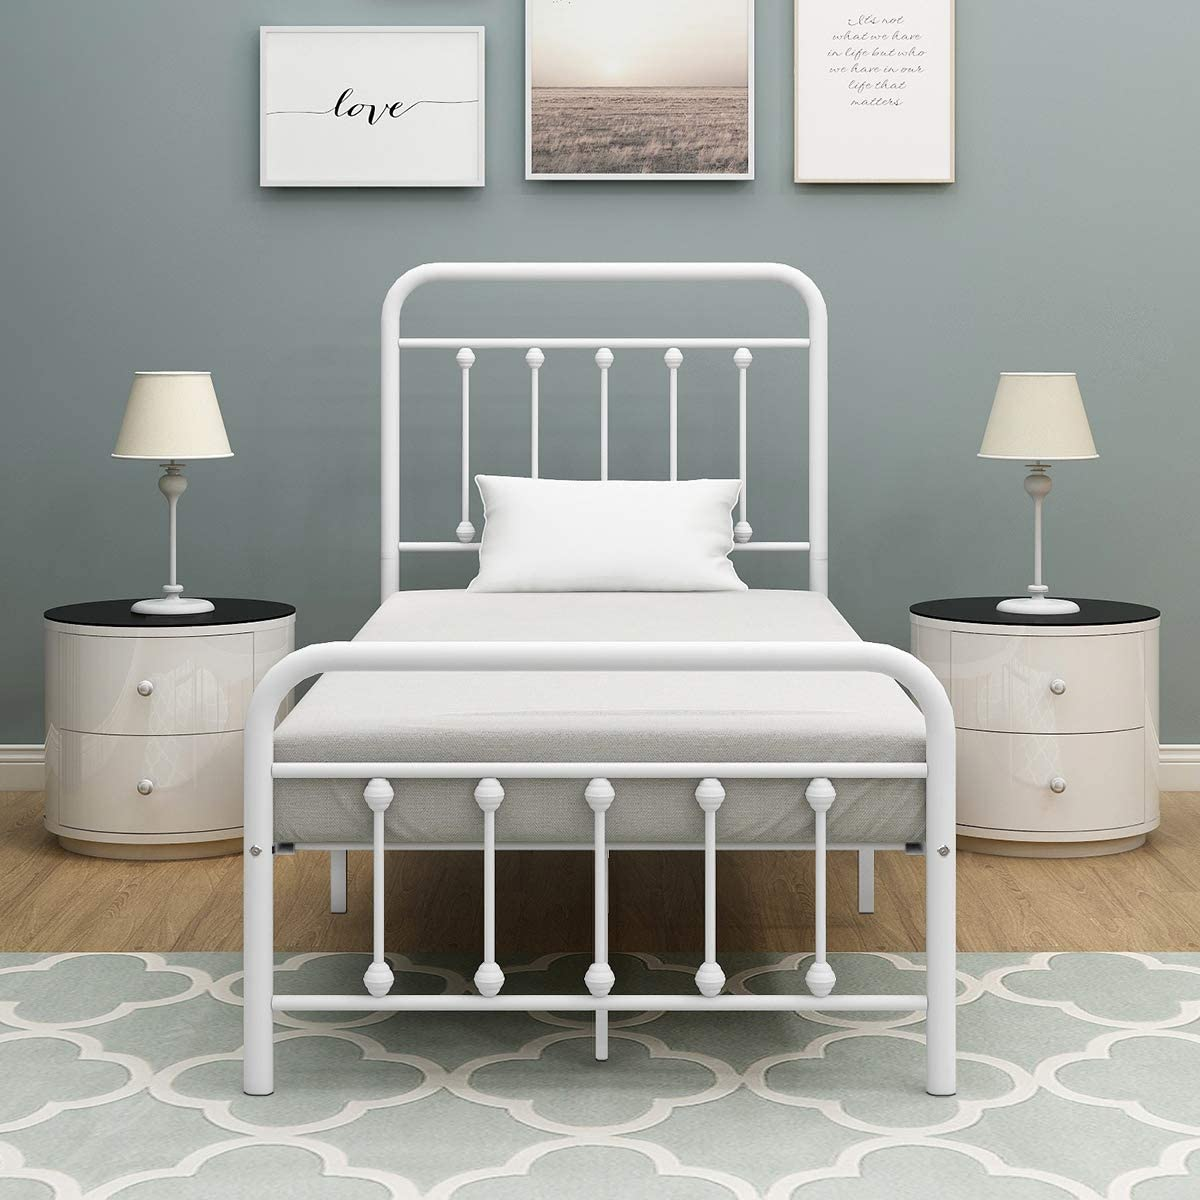 BOFENG Twin Size Metal Bed Platform Frame with Headboard and Footboard Mattress Foundation Heavy Duty Steel Slat Support Box Spring Replacement for Kids Adult Beds White